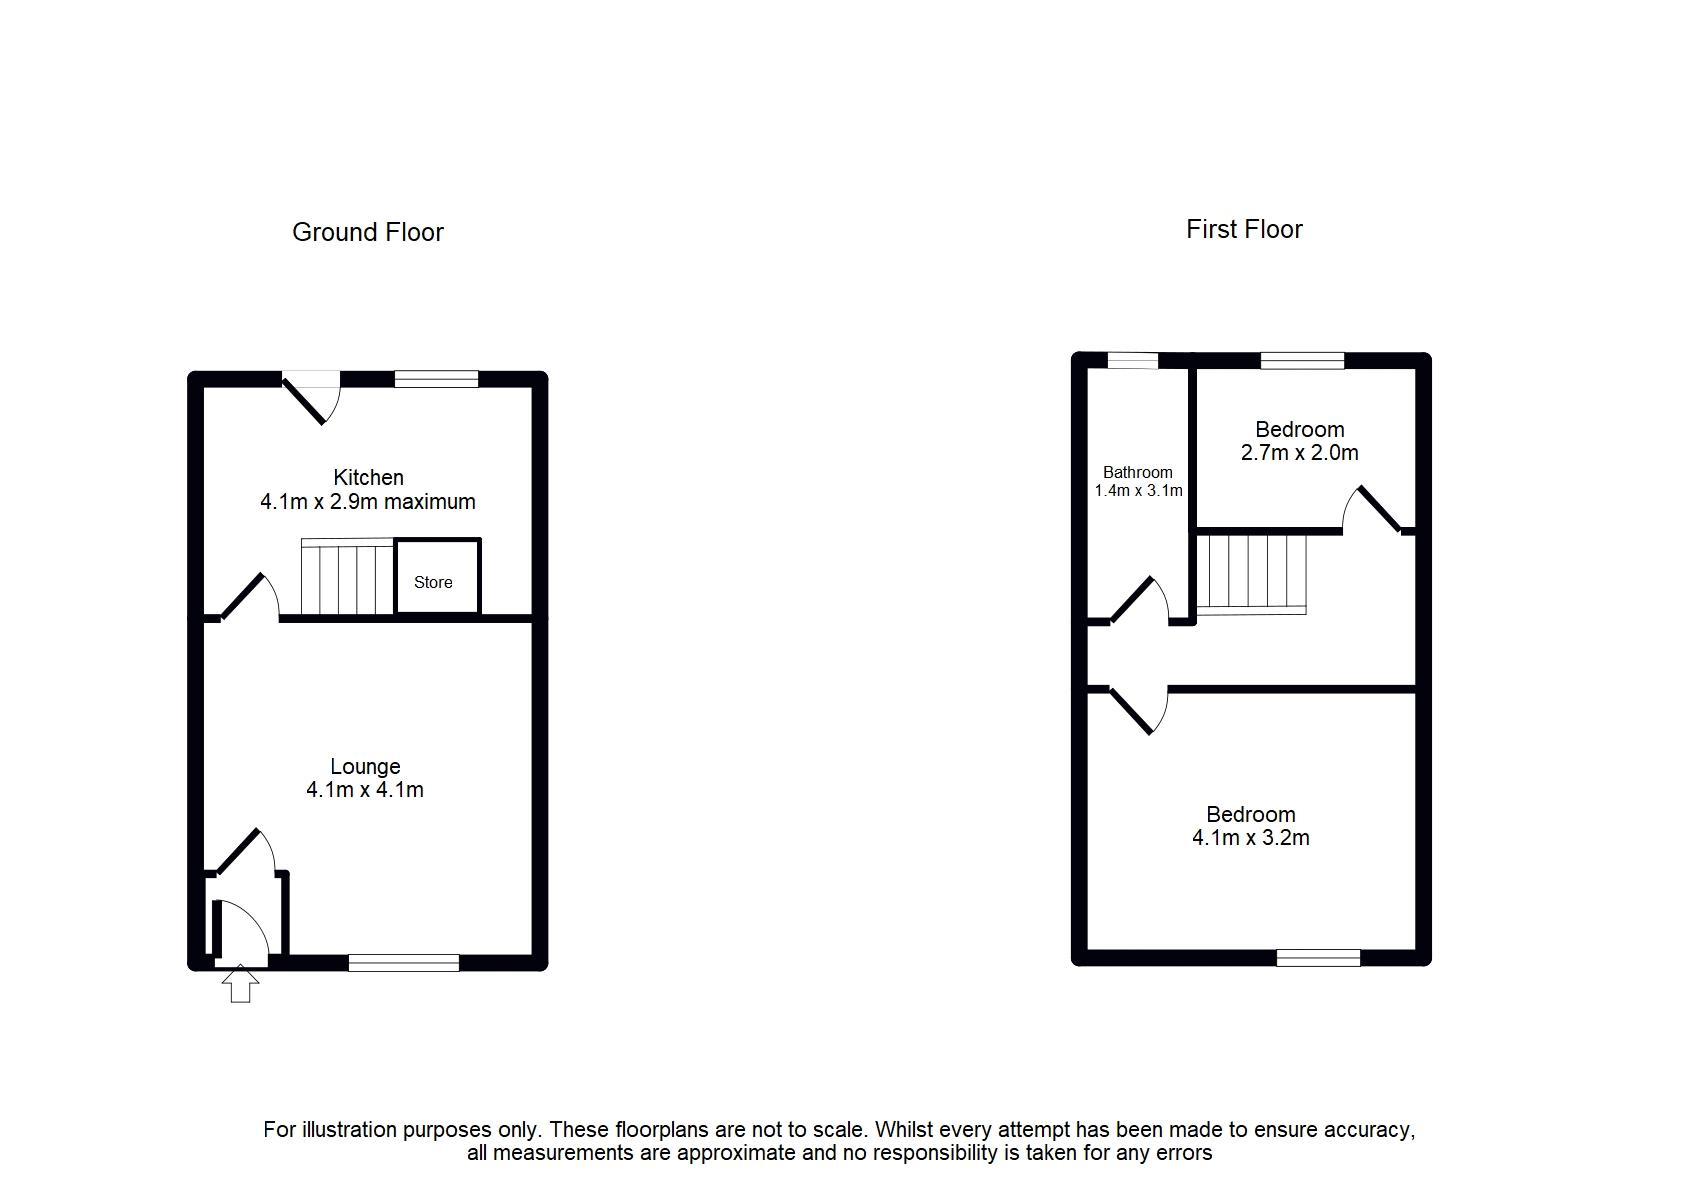 318 Tottington Road, Bury Floorplan